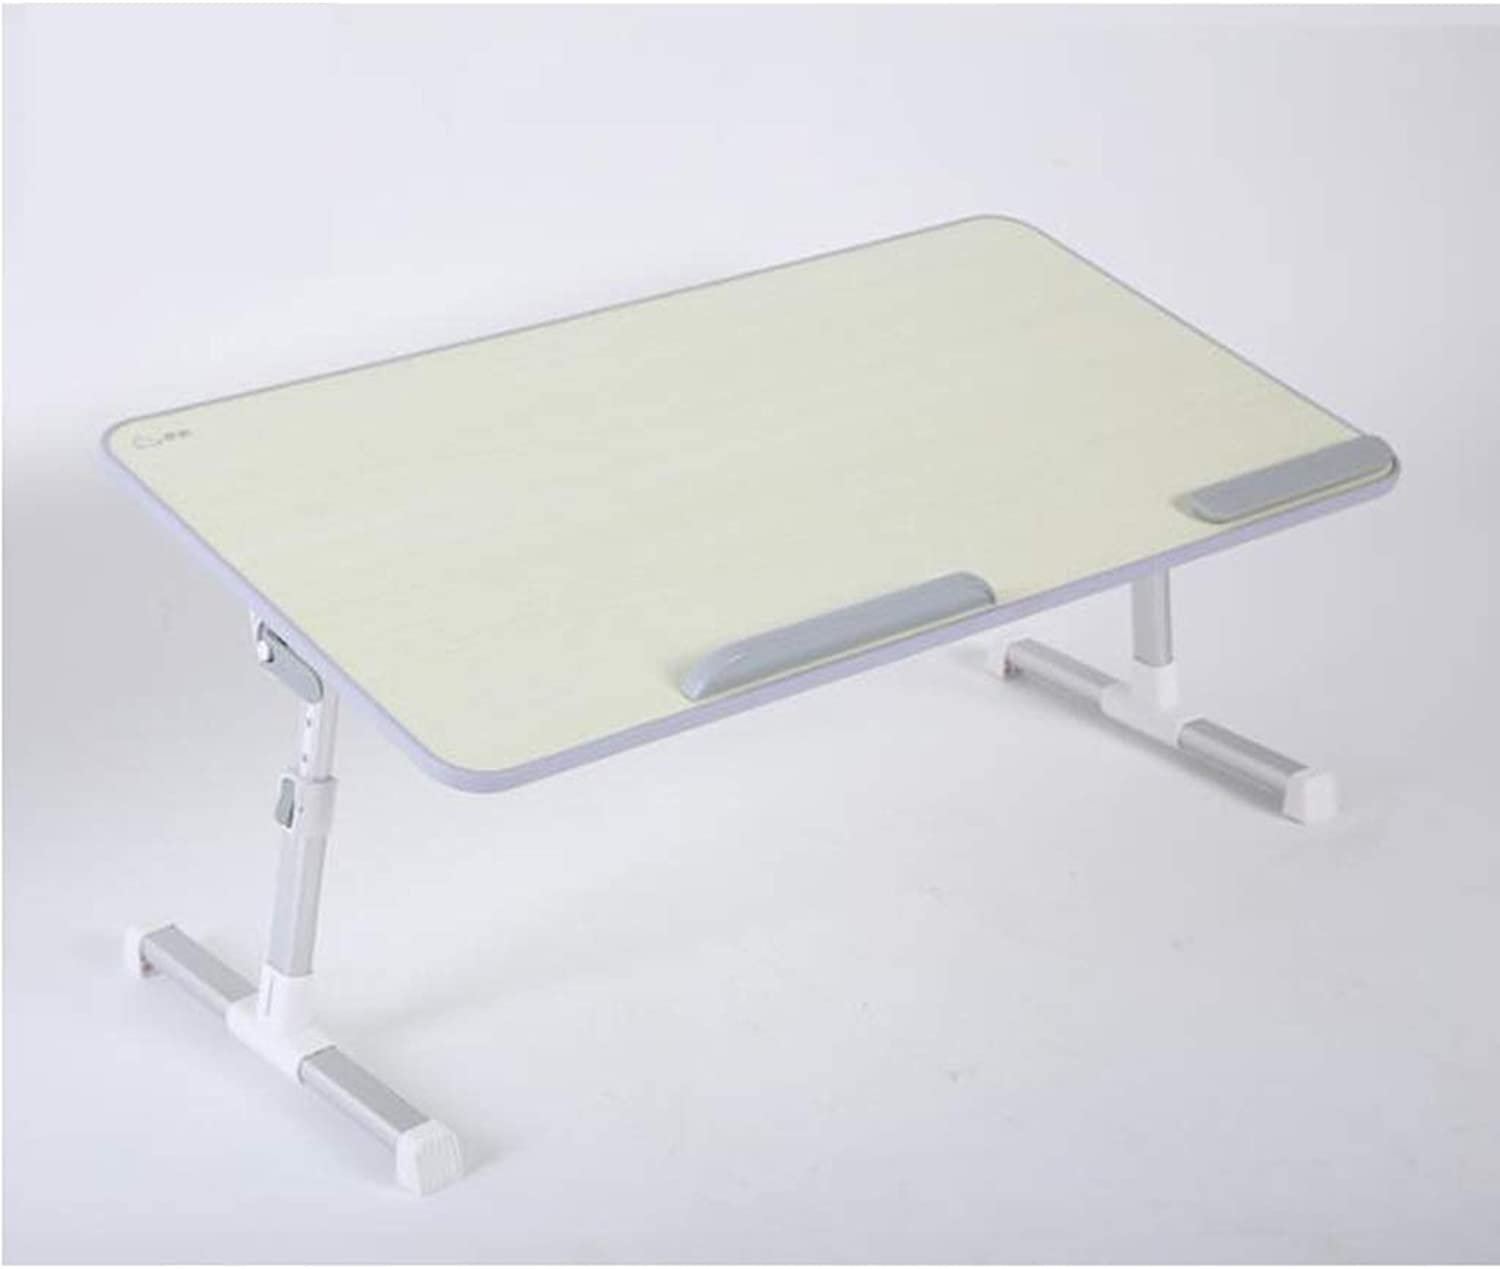 JSFQ Folding Table for Bed - Laptop Table - Height Can Be Raised and Lowered, 24-32cm, Simple Home Lazy Table Folding Table (color   C)